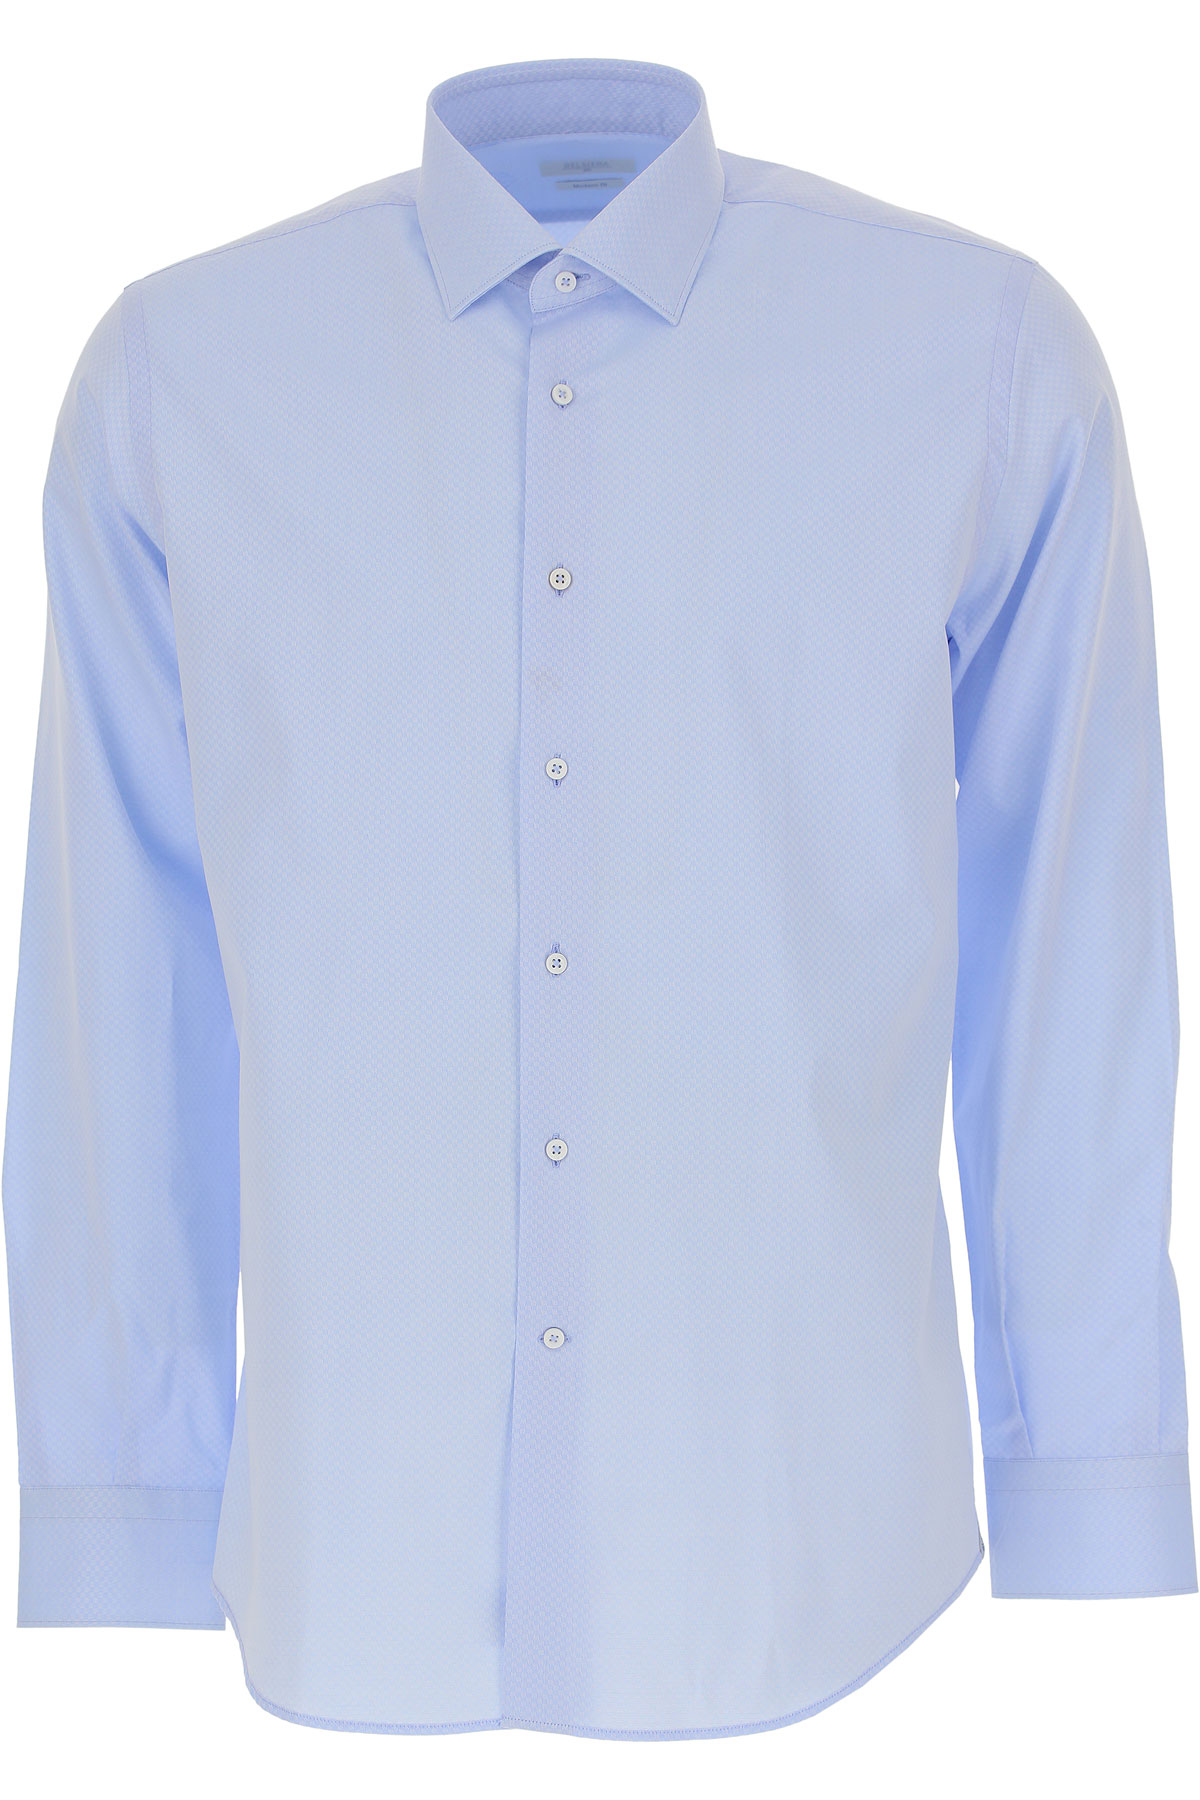 Image of Del Siena Shirt for Men, Azure, Cotton, 2017, 15.75 16 16.5